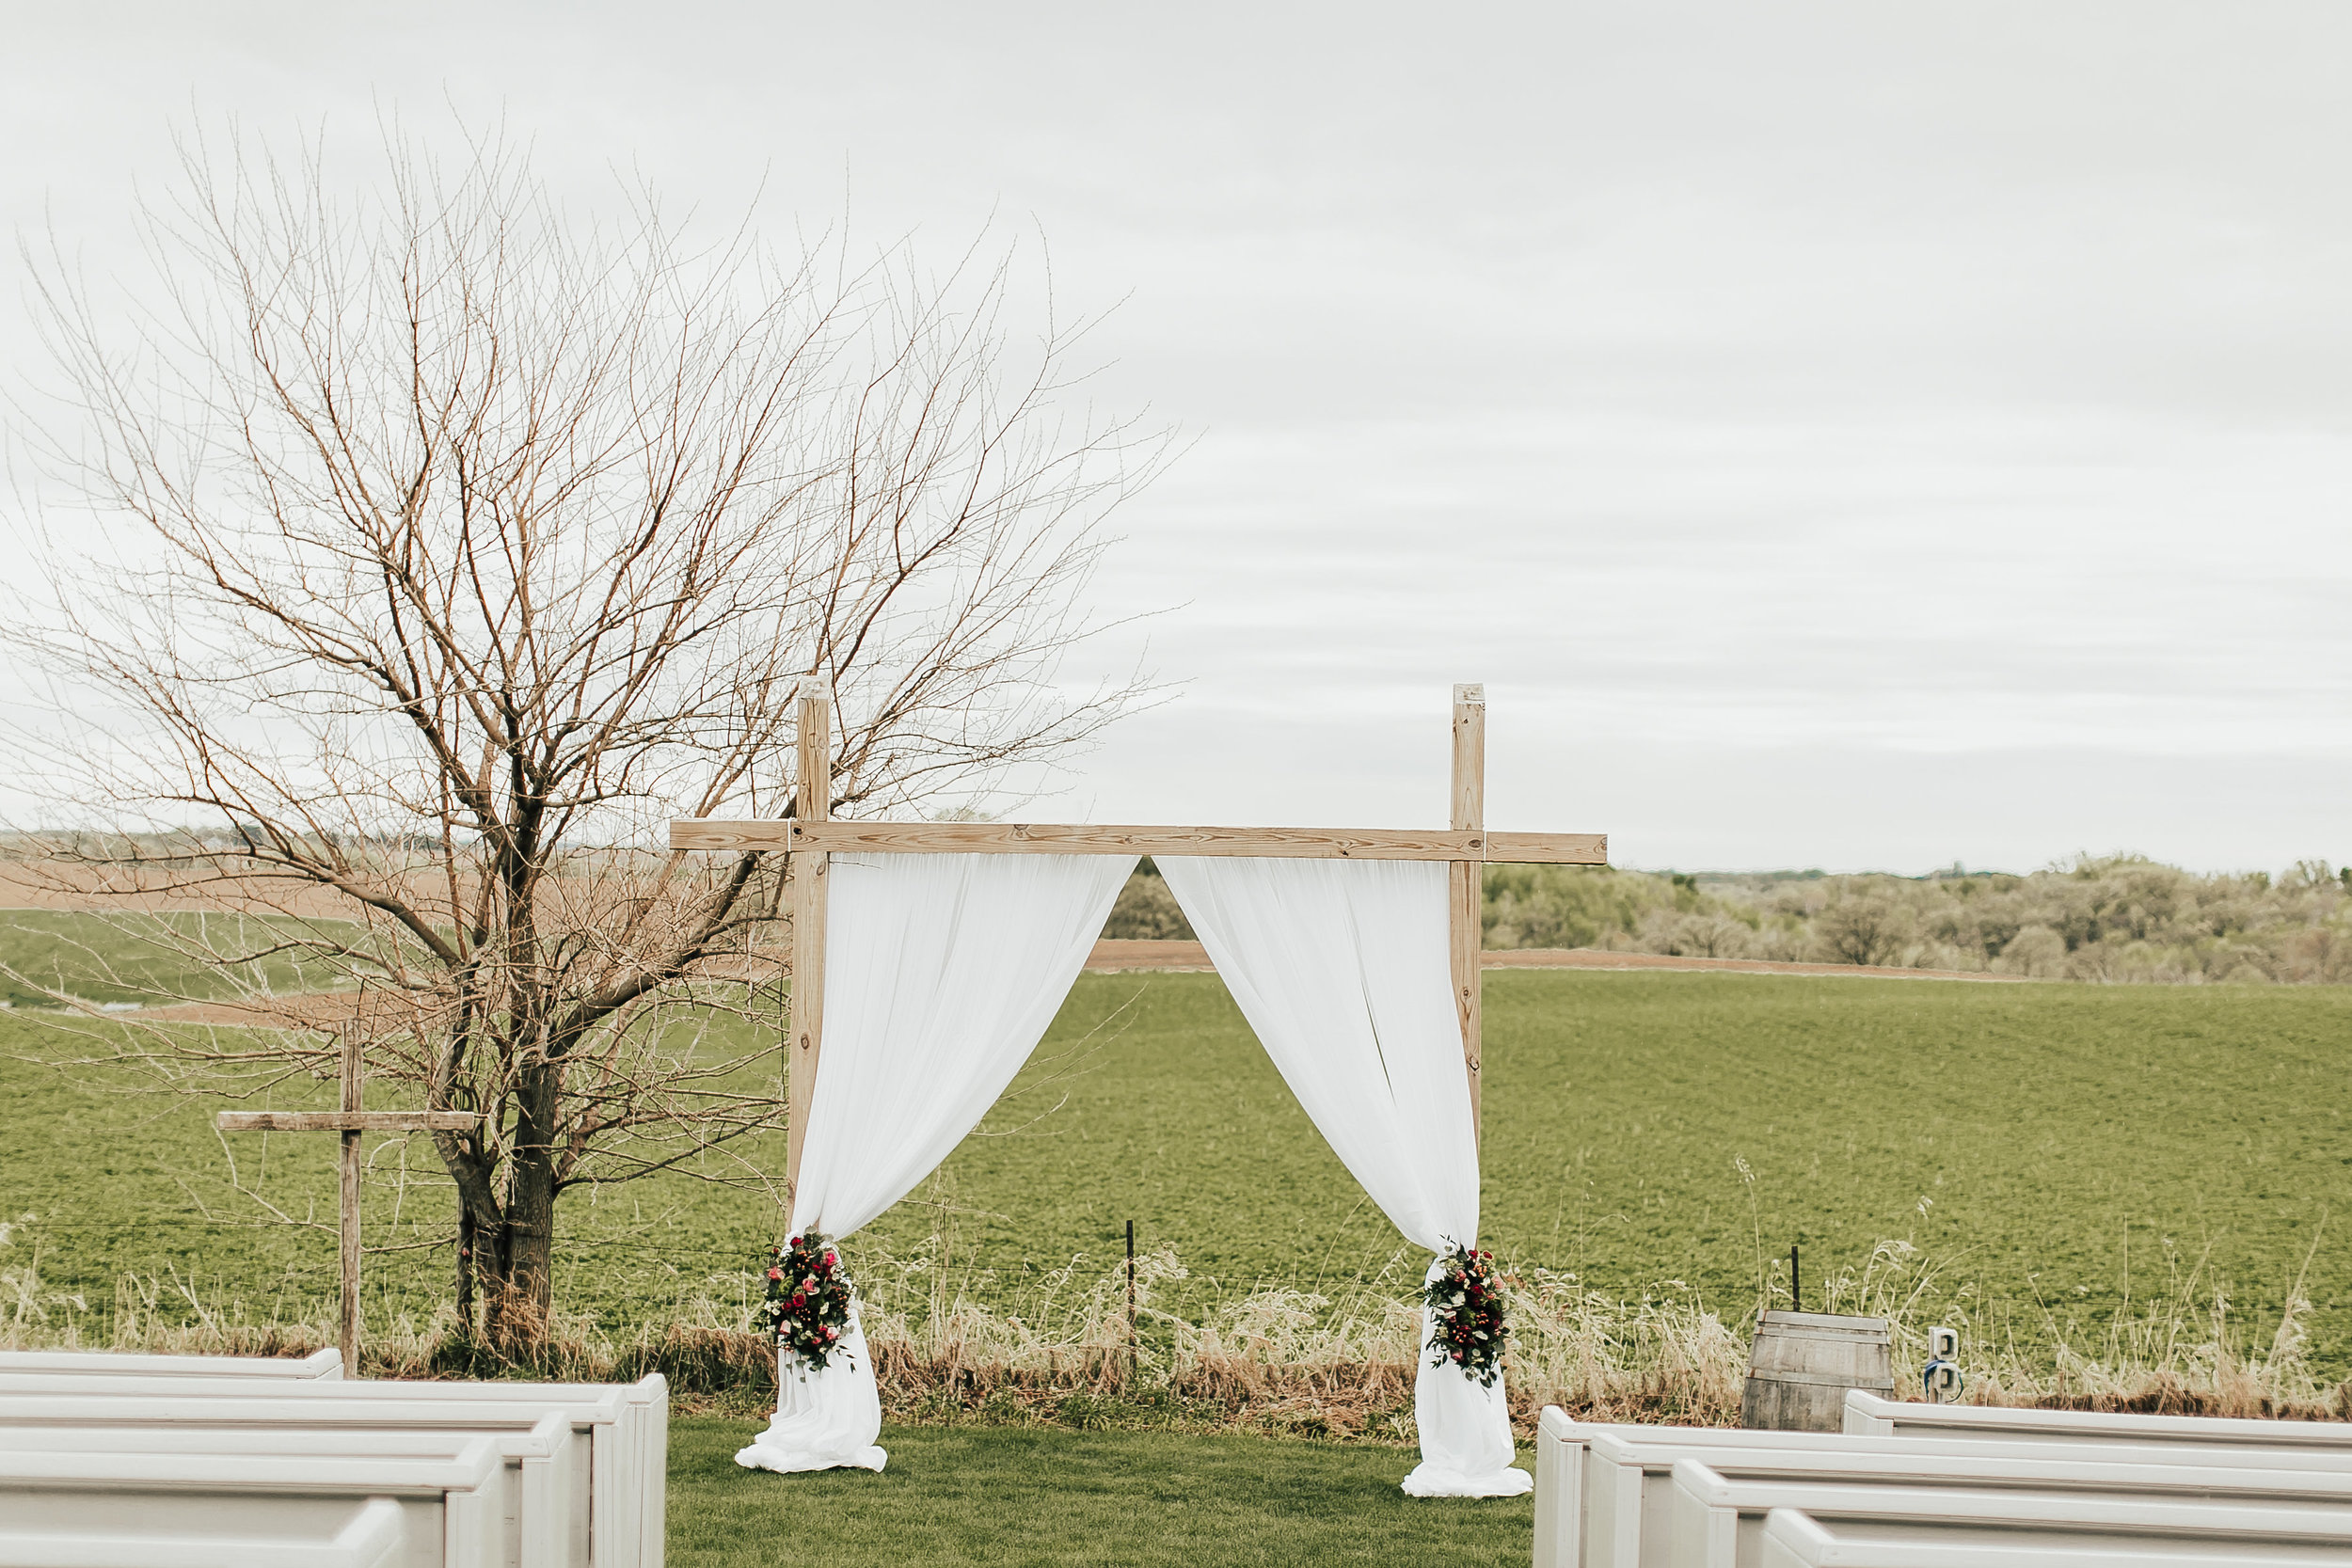 Legacy-Hil-Farm-Wedding-Ceremony-MN.jpg